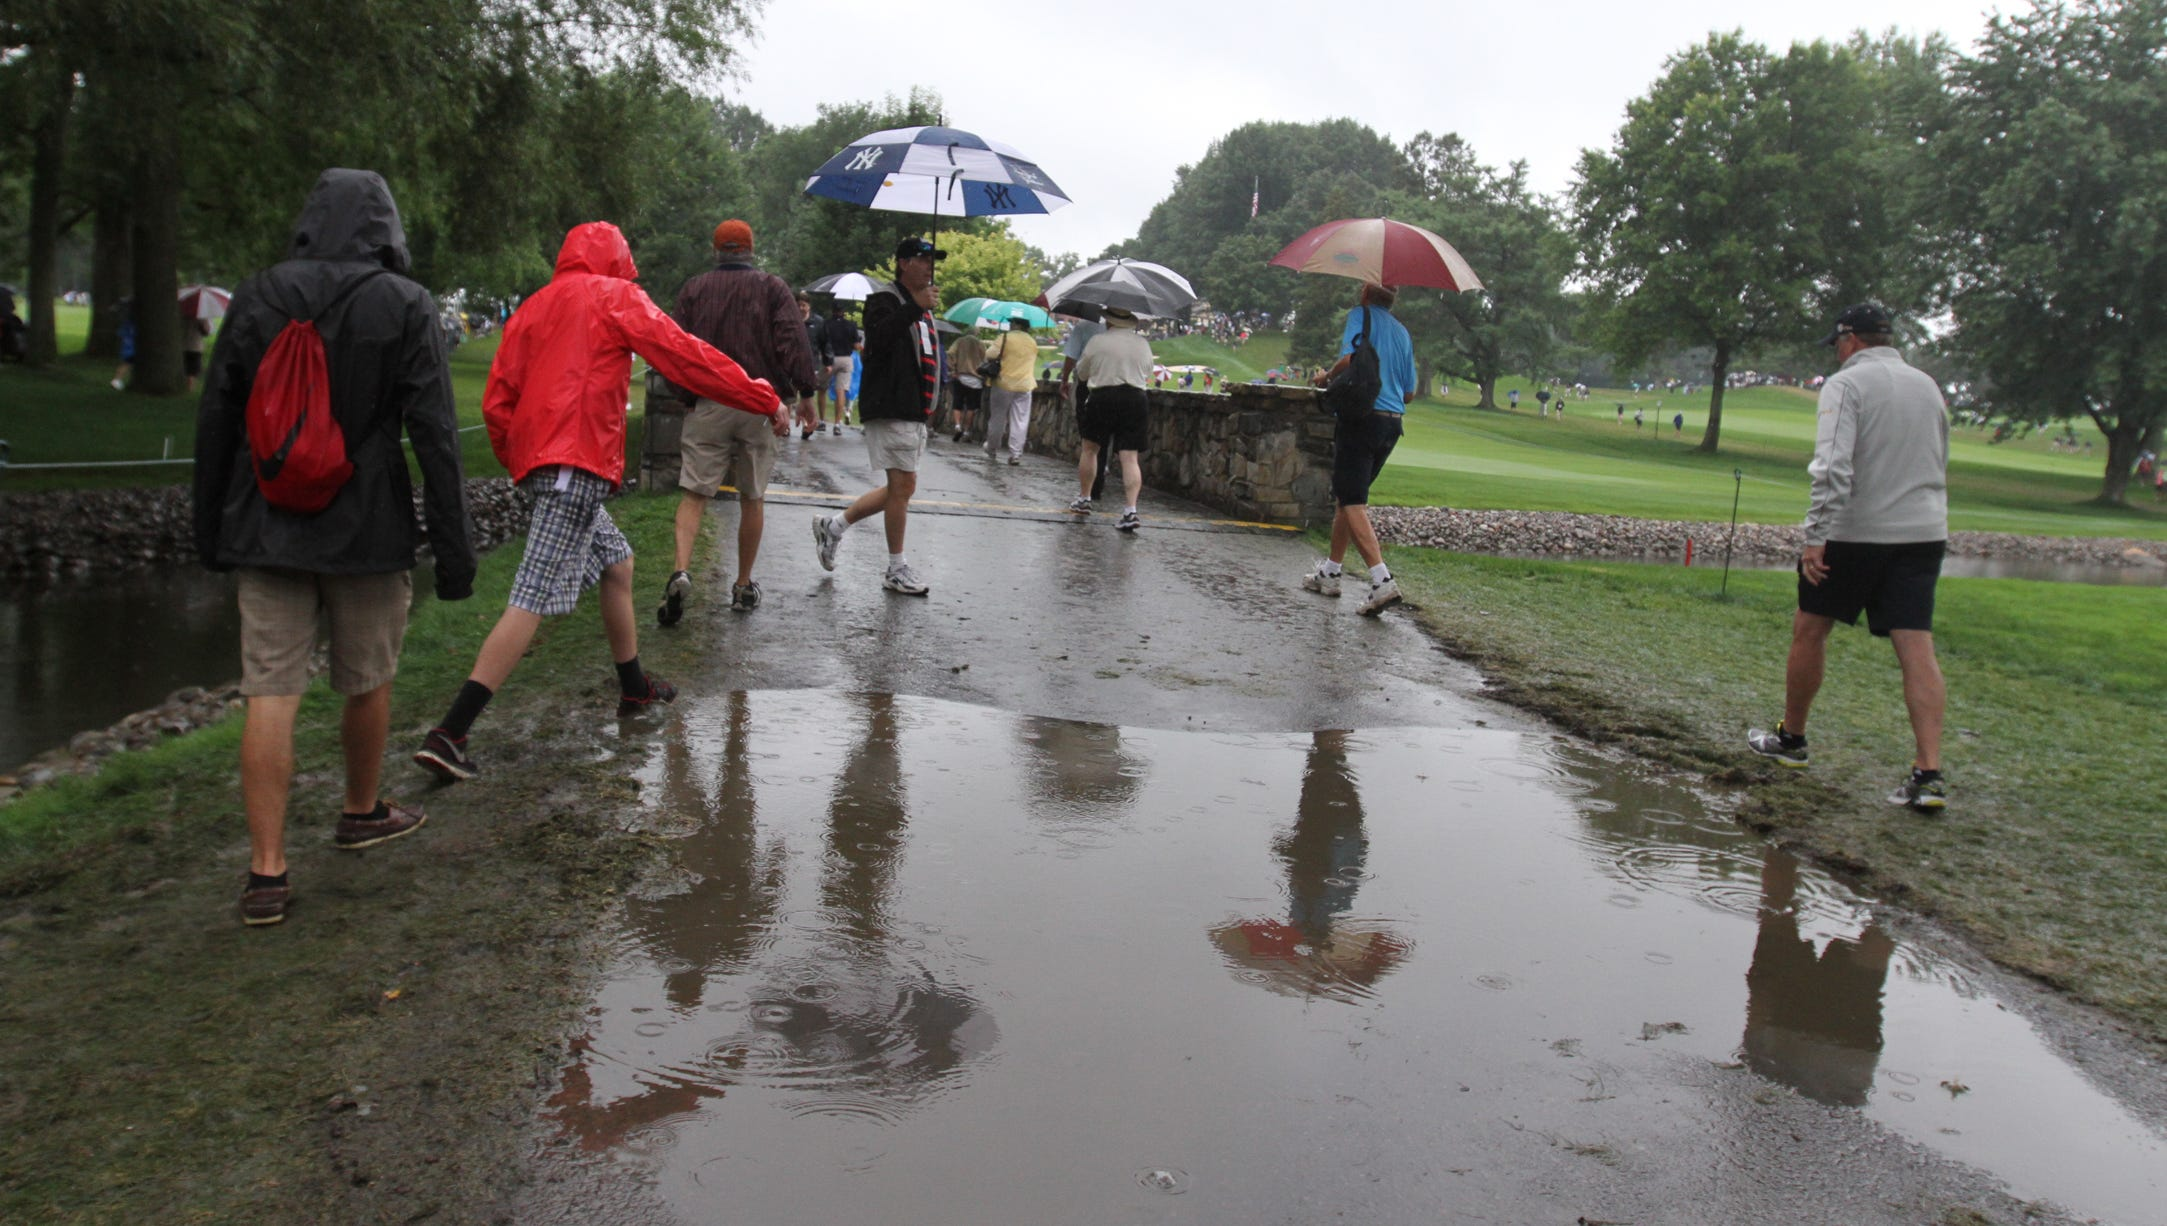 Fans try to avoid a large puddle between the 1 and 13 fairways during the second round at the  95th PGA Championship held at Oak HIll Country Club in Pittsford on August 9, 2013.